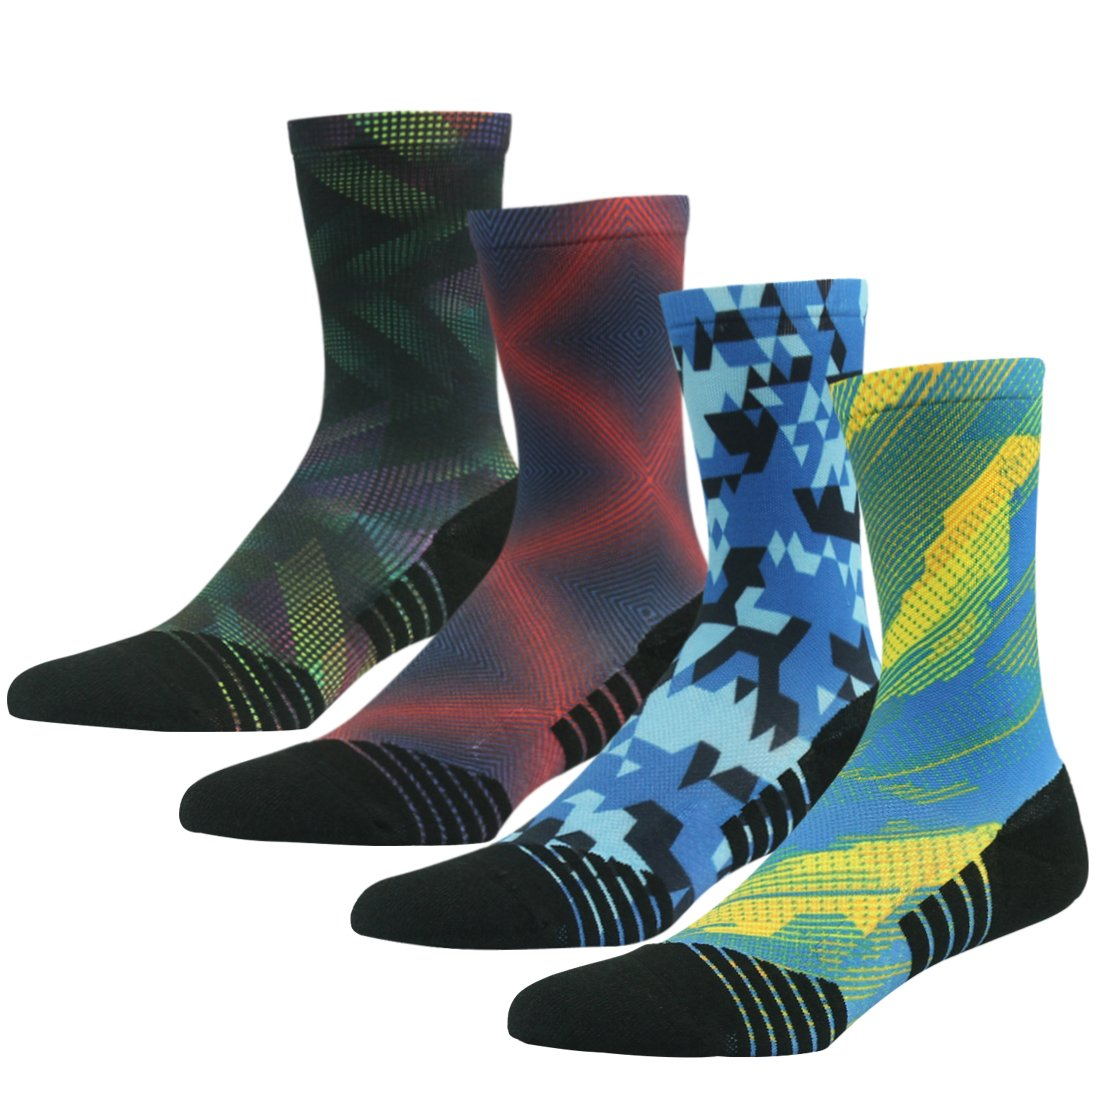 4 Pair color 2 Running Socks Support, HUSO Men Women High Performance Arch Compression Cushioned Quarter Socks 1,2,3,4,6 Pairs